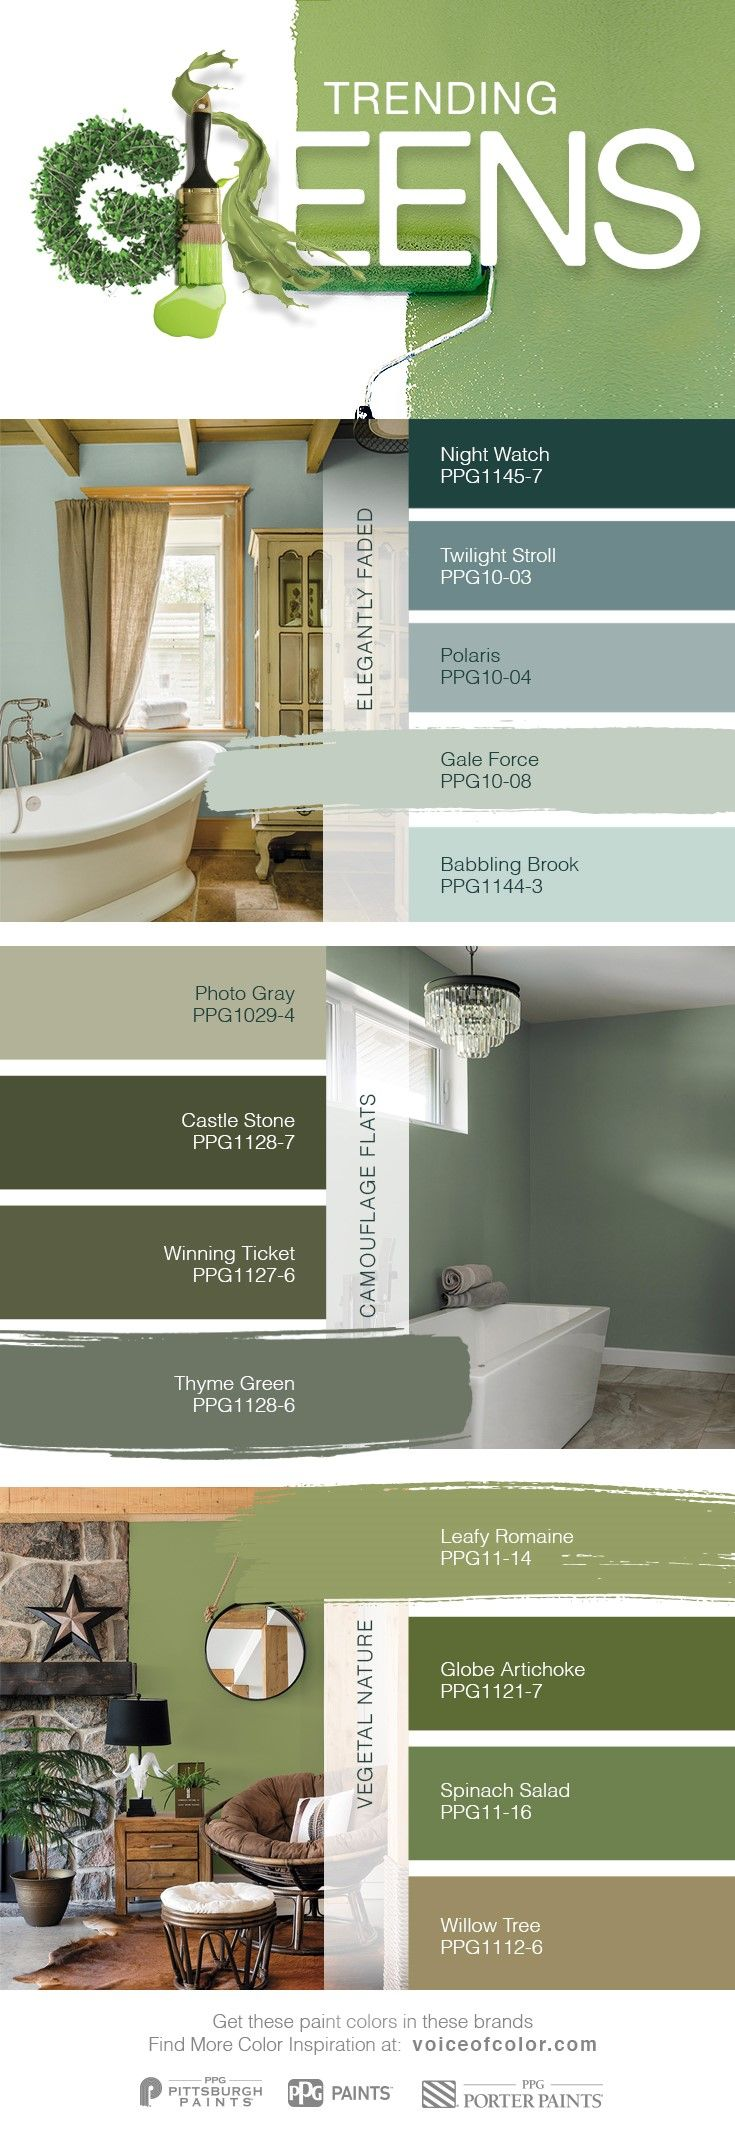 Green paint colors - Trending Green Paint Colors For 2017 The Natural World Is Once Again Becoming A Dominant